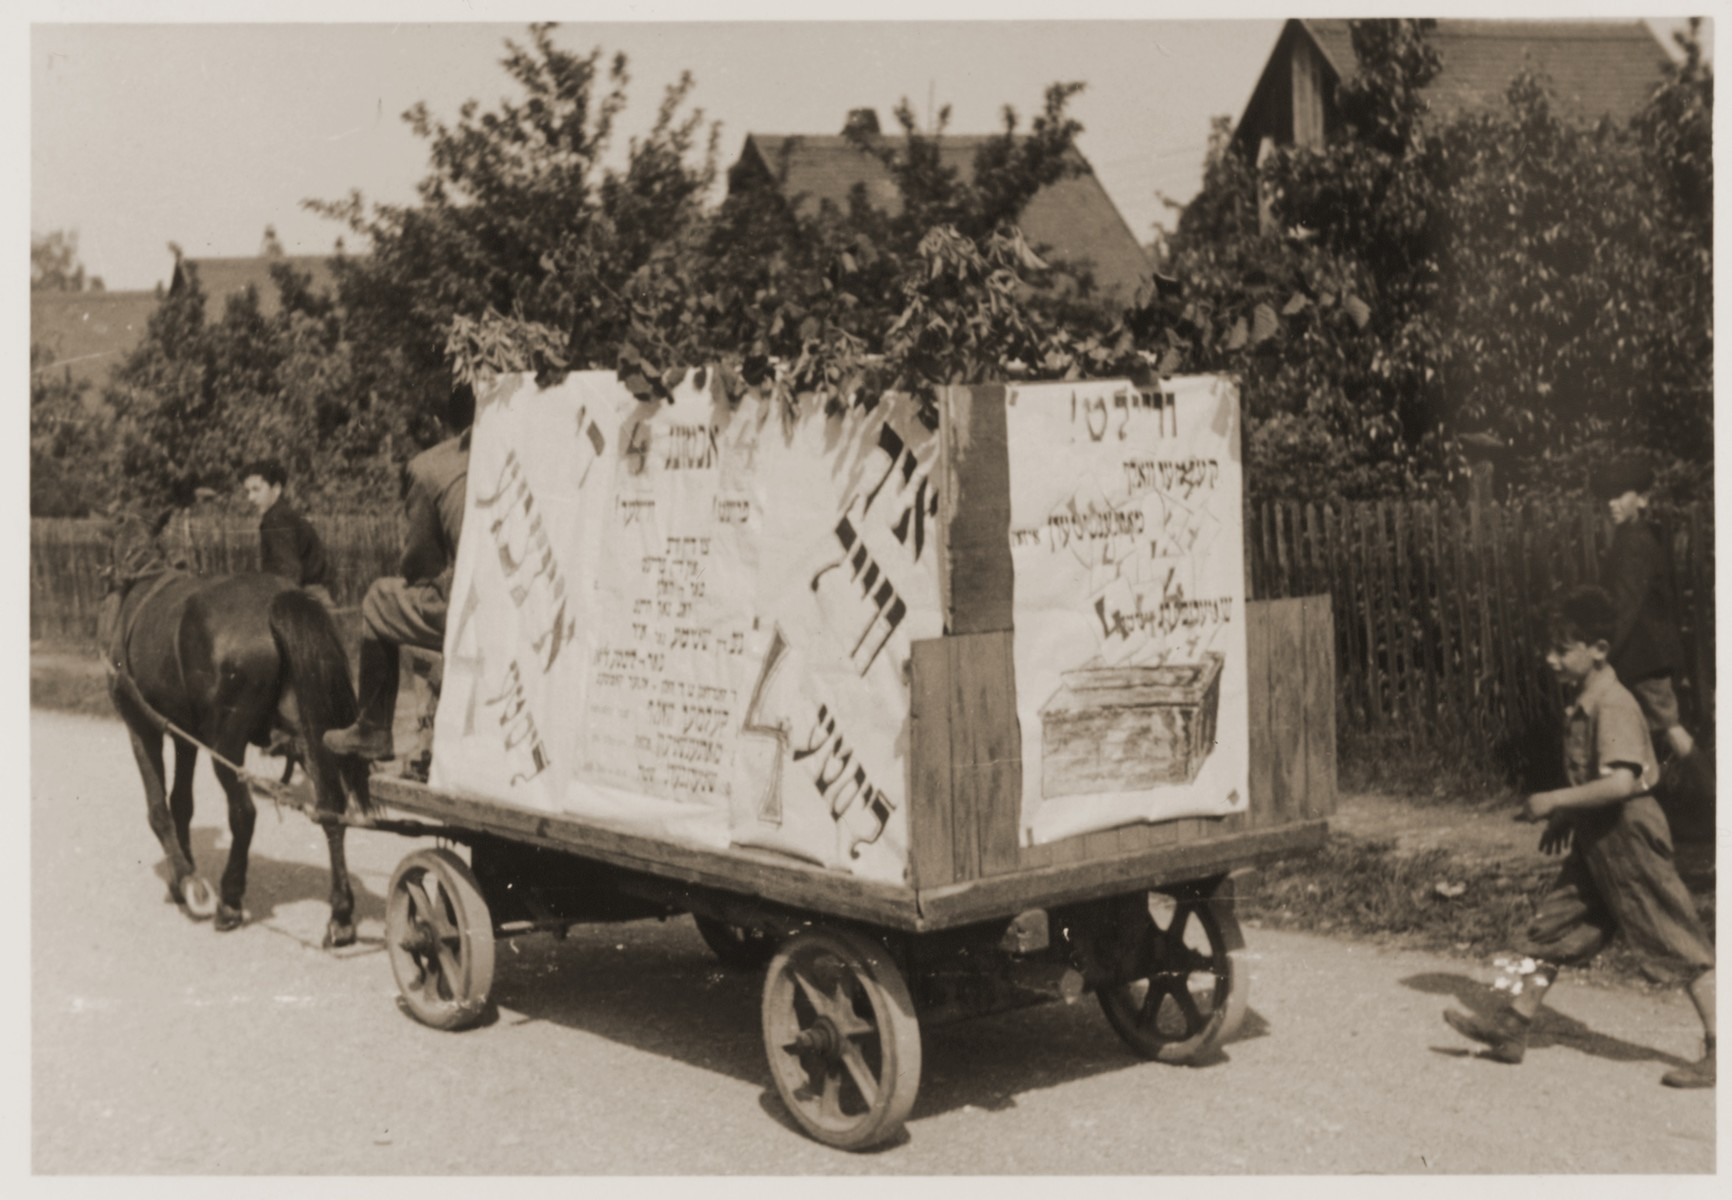 An election campaign wagon at Neu Freimann displaced persons camp covered with posters urging voters to support List #4.